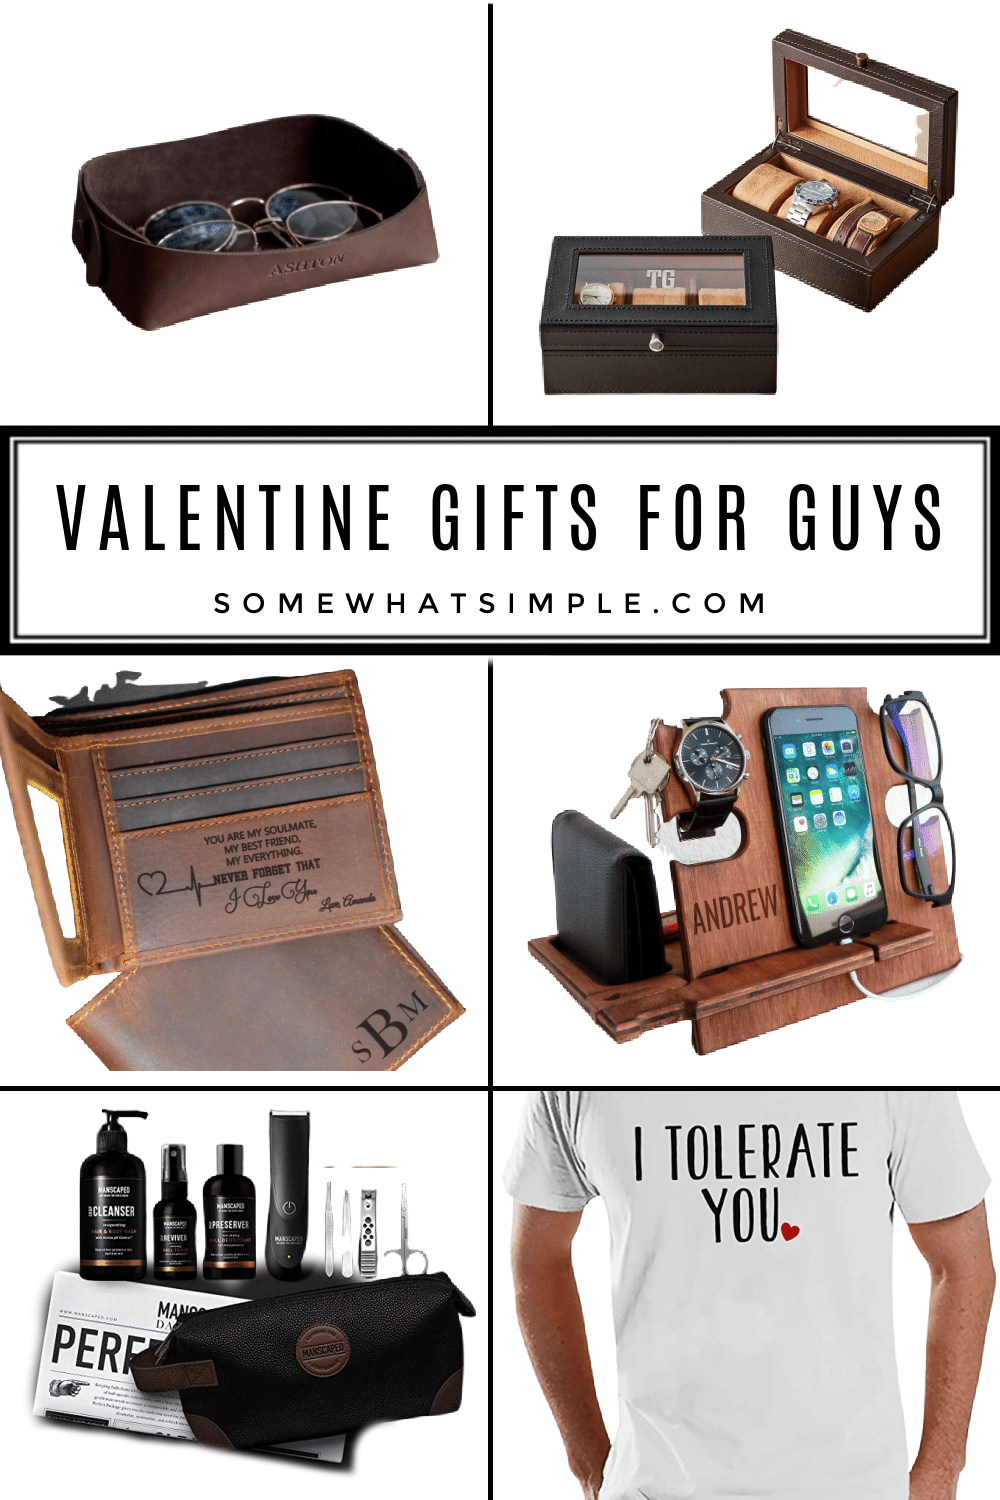 Whether you're looking for gifts that are easy, funny or thoughtful, here's a list of our favorite Valentine Gifts for him that he is sure to LOVE! via @somewhatsimple